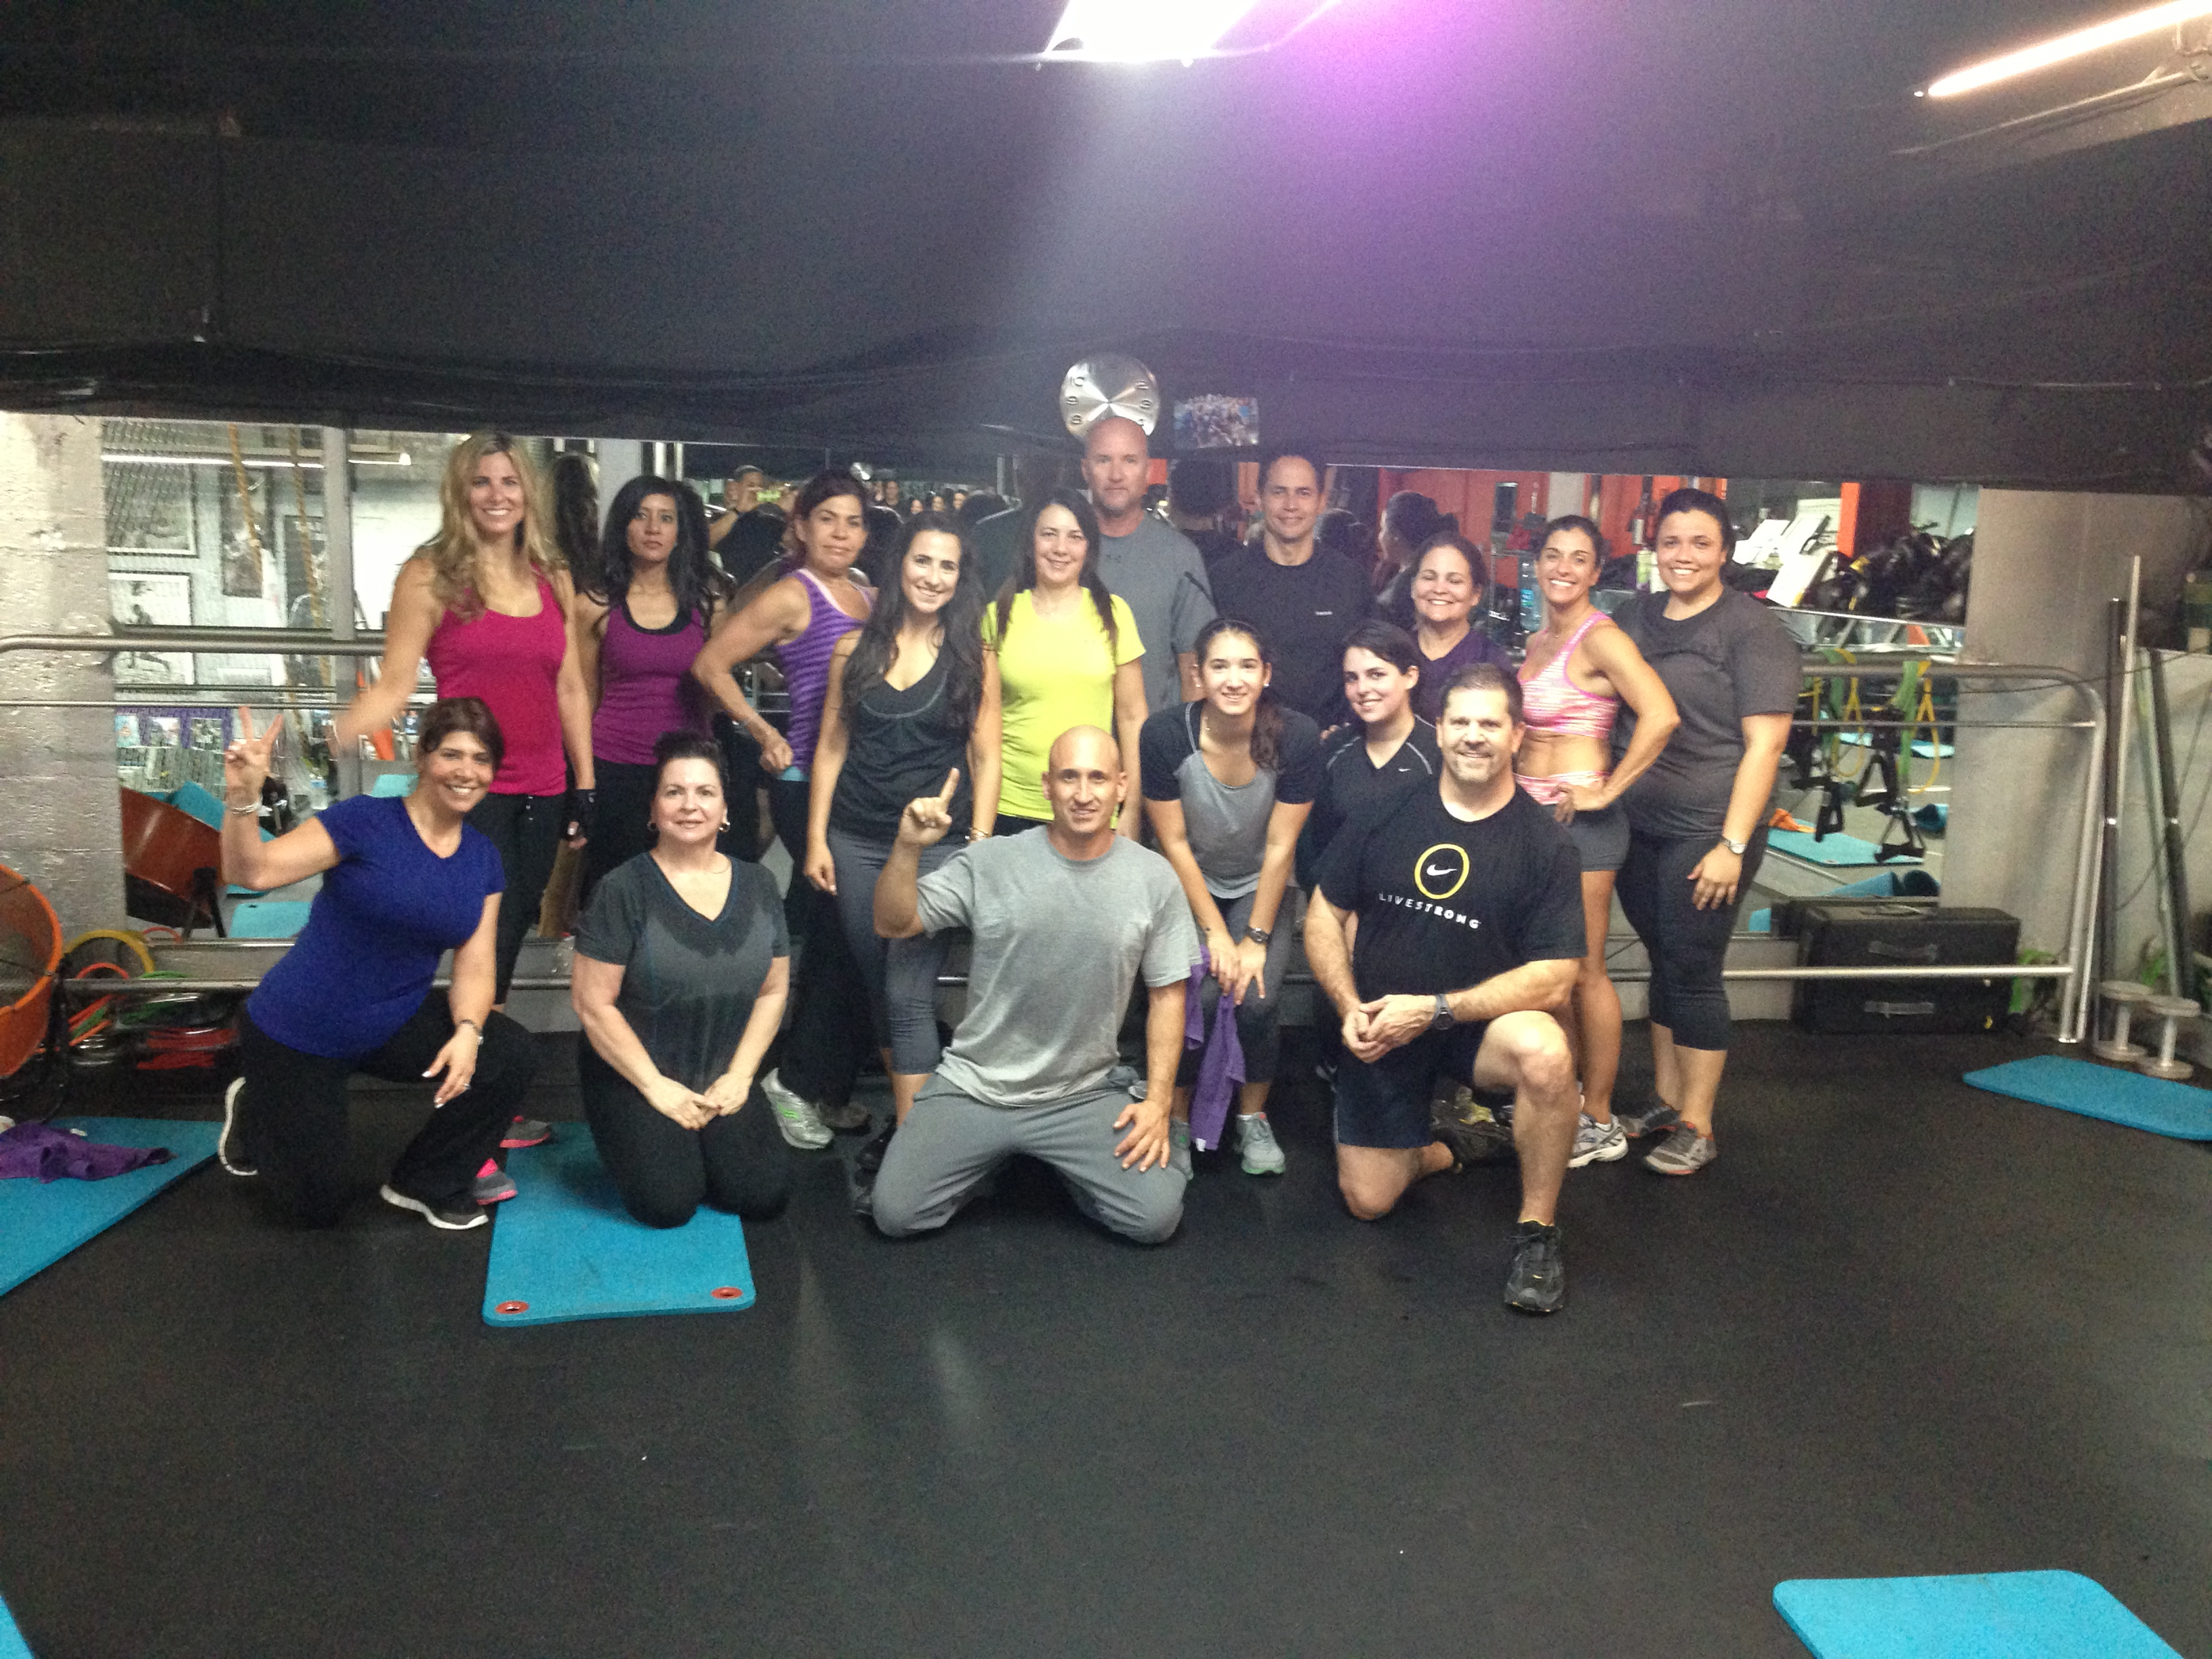 Get it in-Get it Done Fitness class at SoMi Fitness